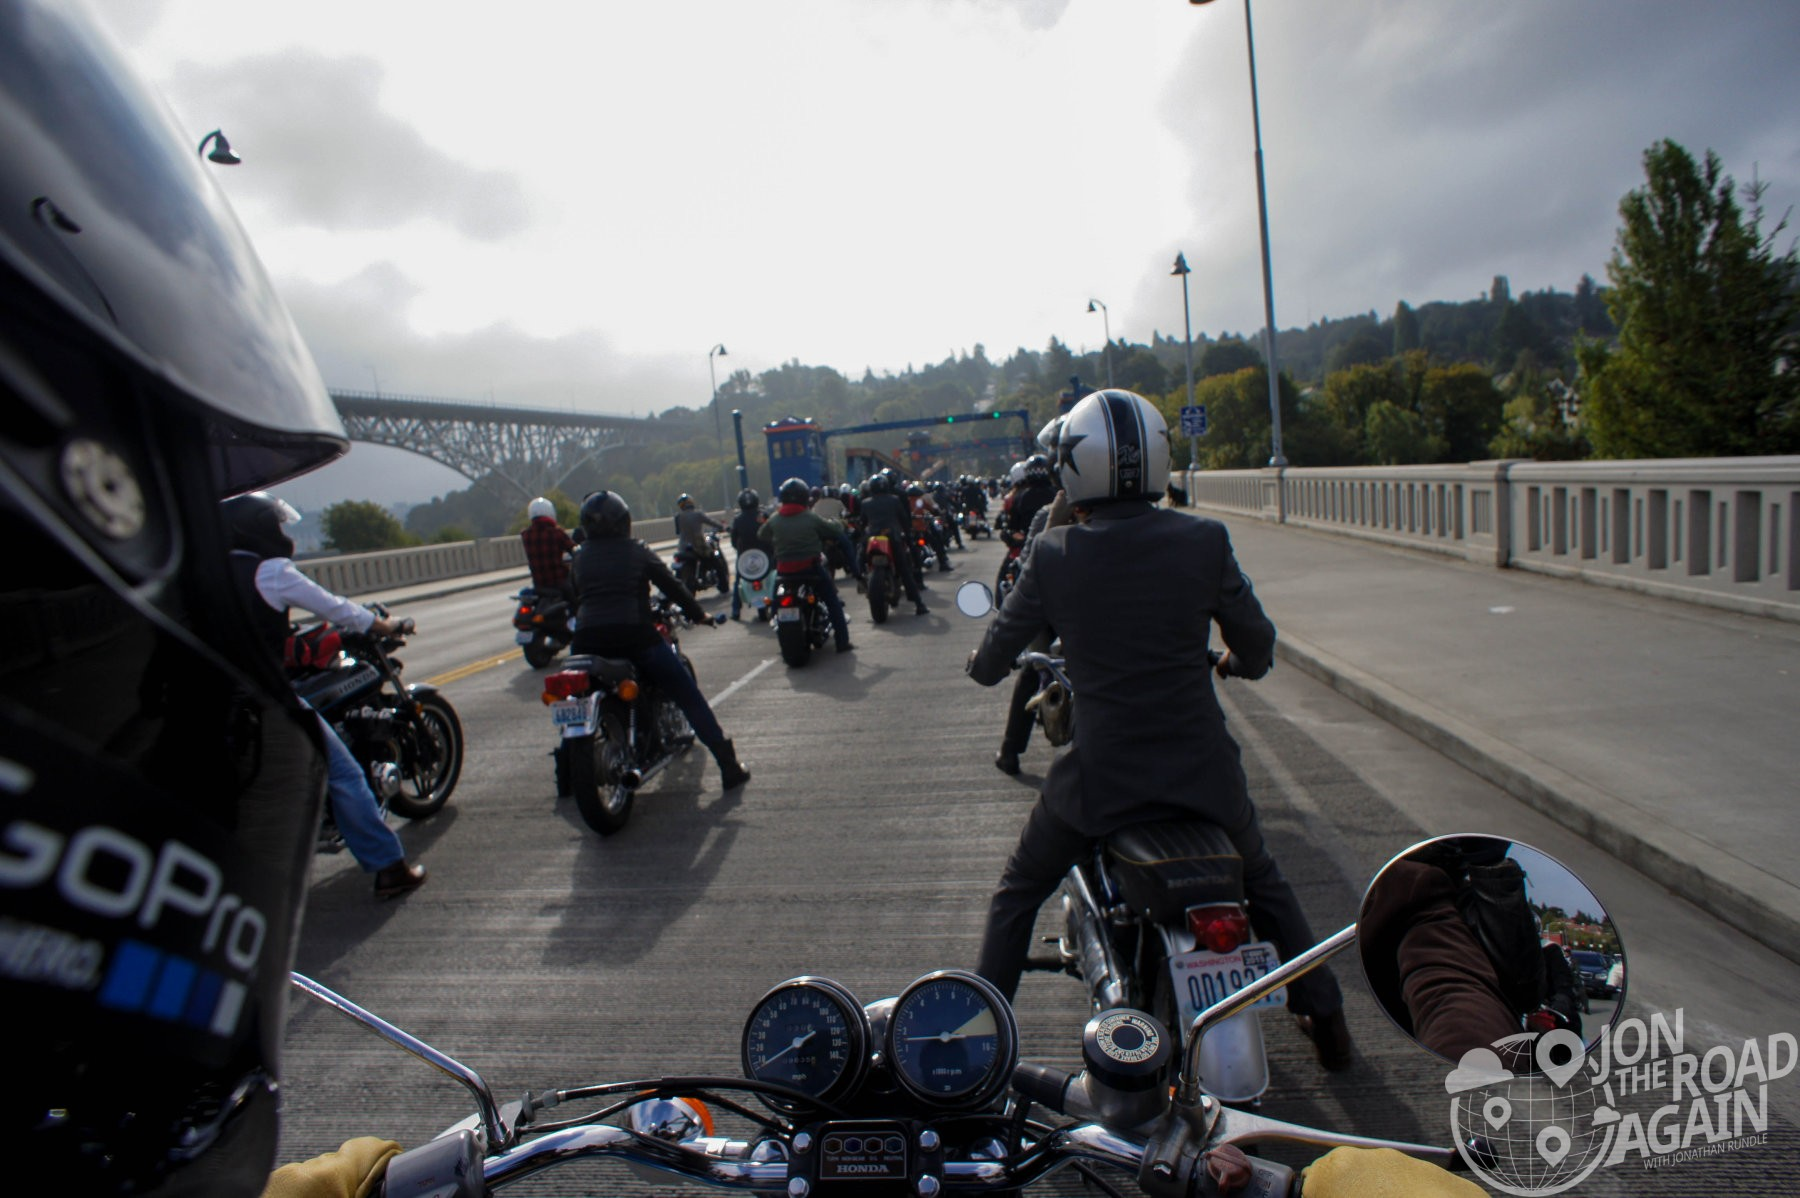 2014 Seattle Distinguished Gentlemen's Ride